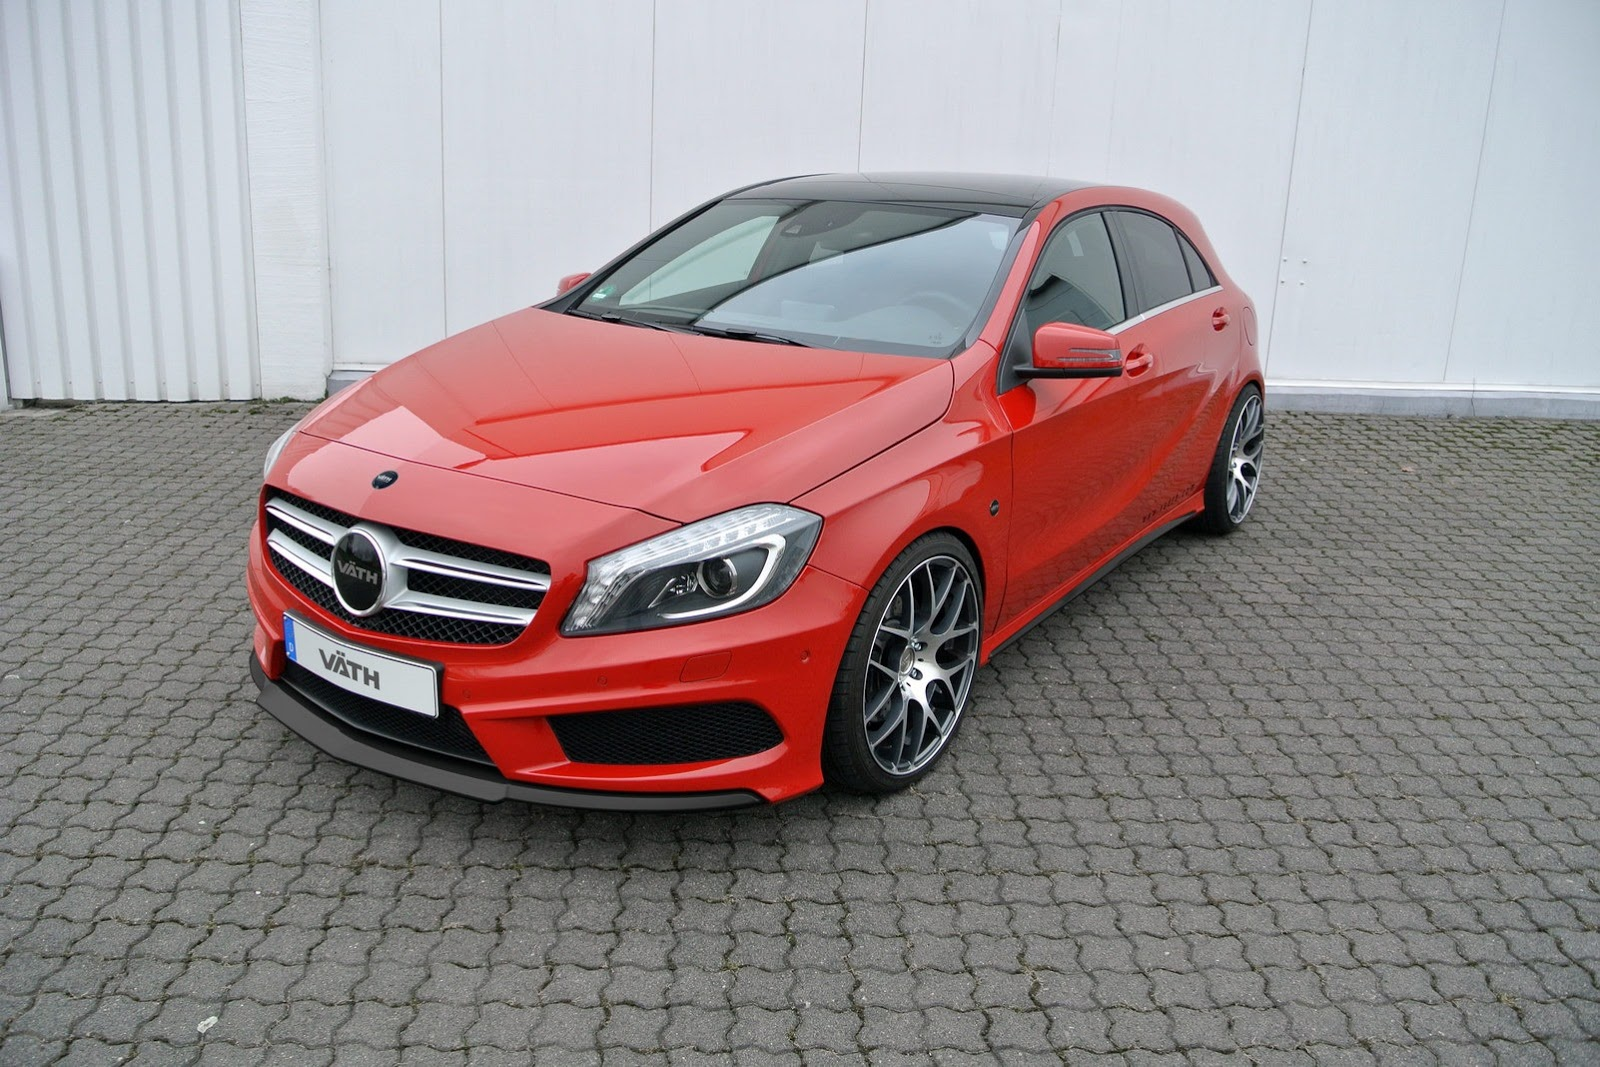 New Mercedes A Class Tuning By Vath A250 Gets 245 Hp